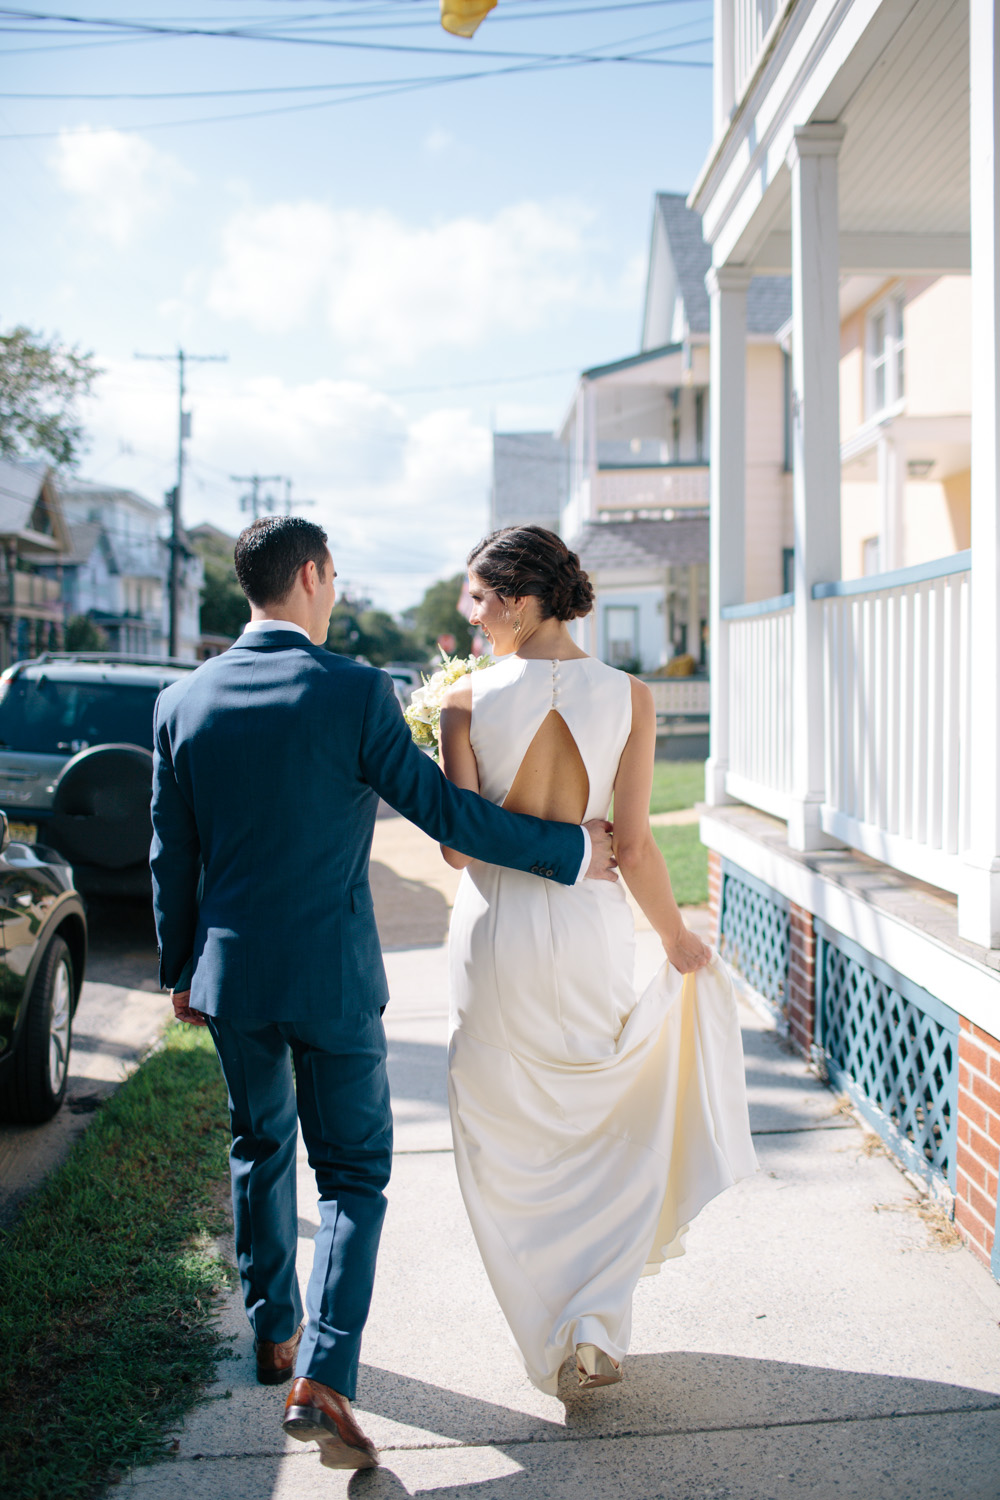 ocean grove destination wedding photographer-6.jpg